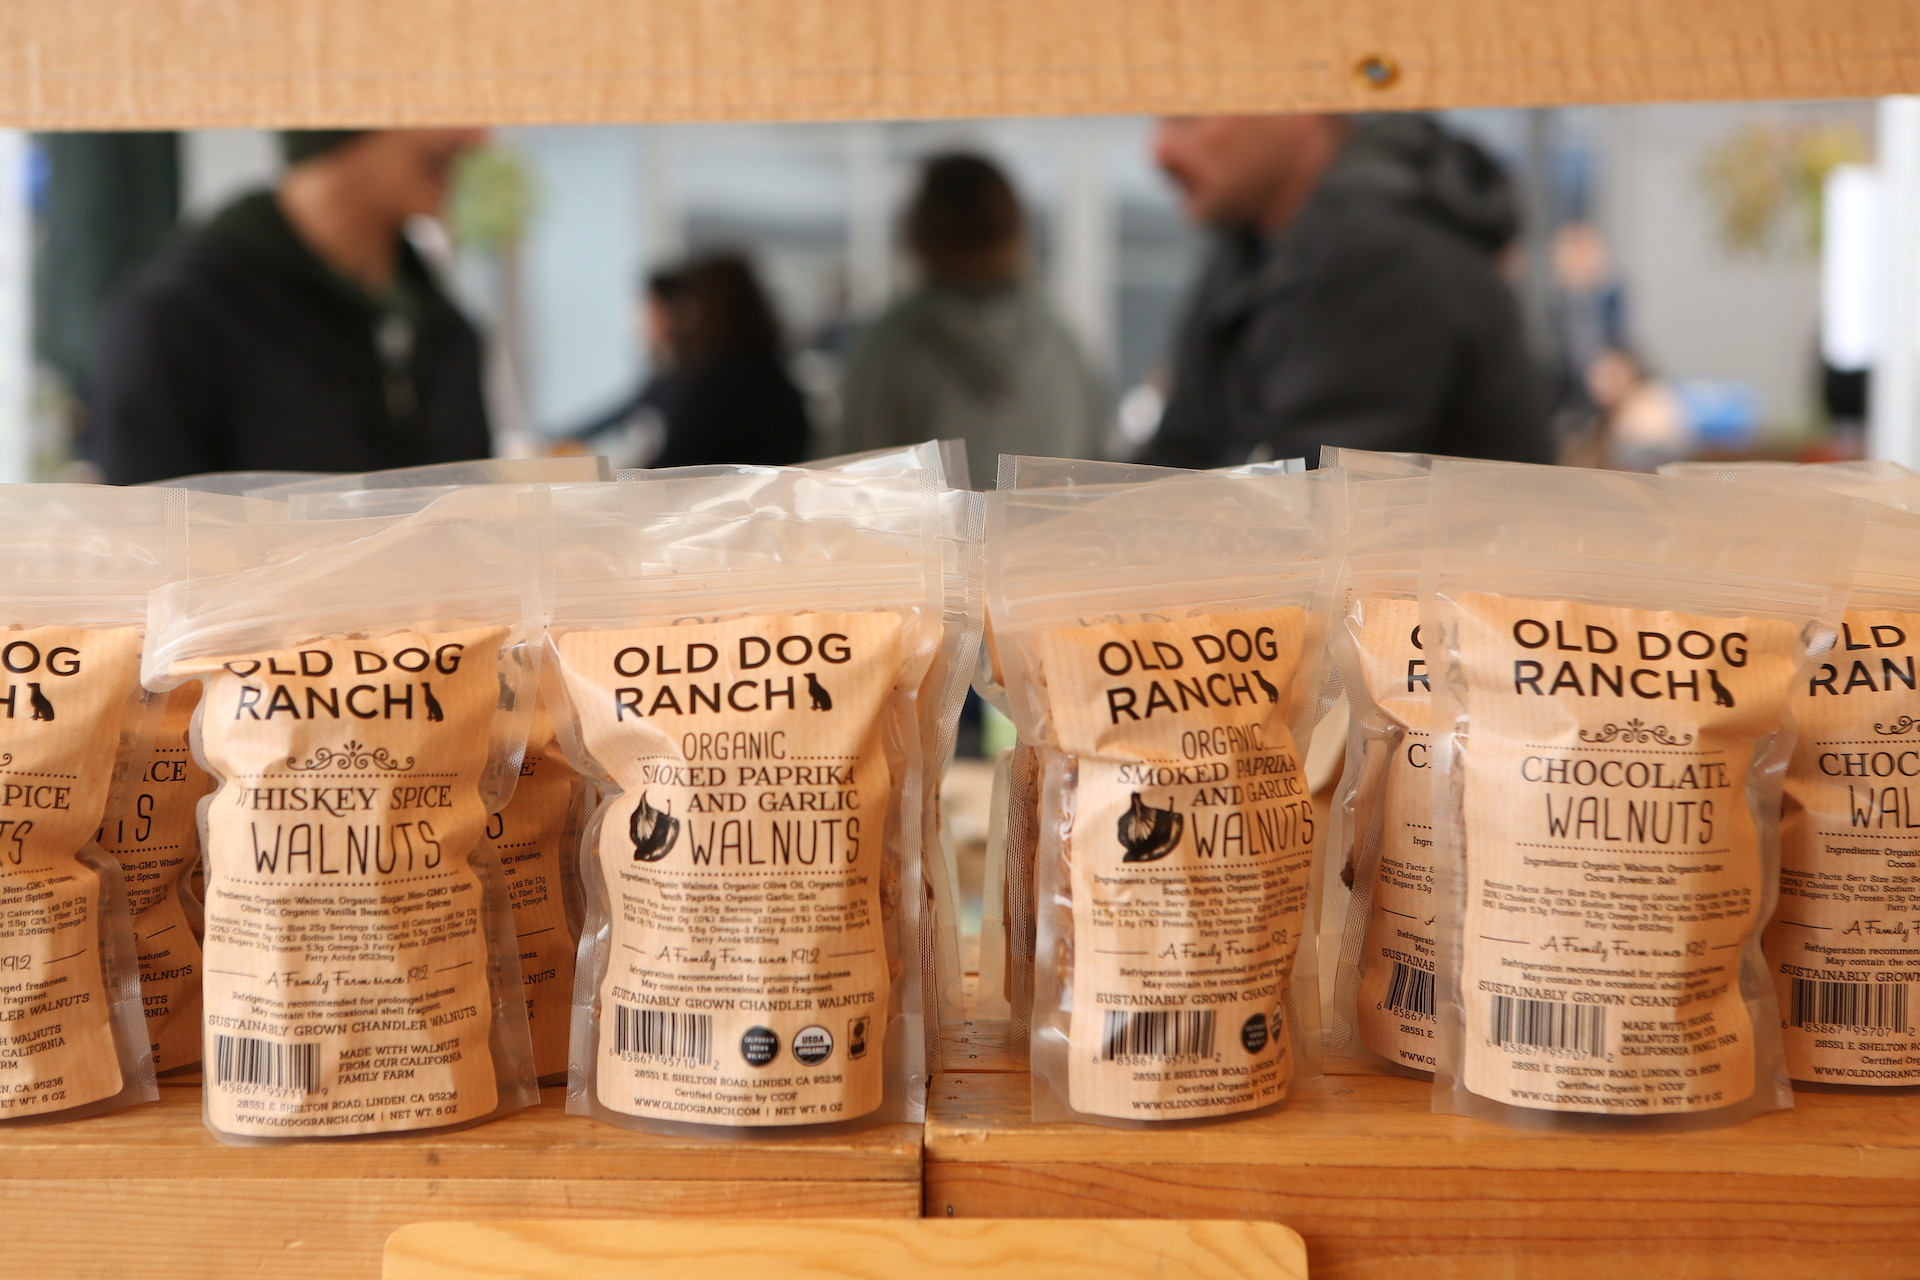 Old Dog Ranch assorted walnut flavors